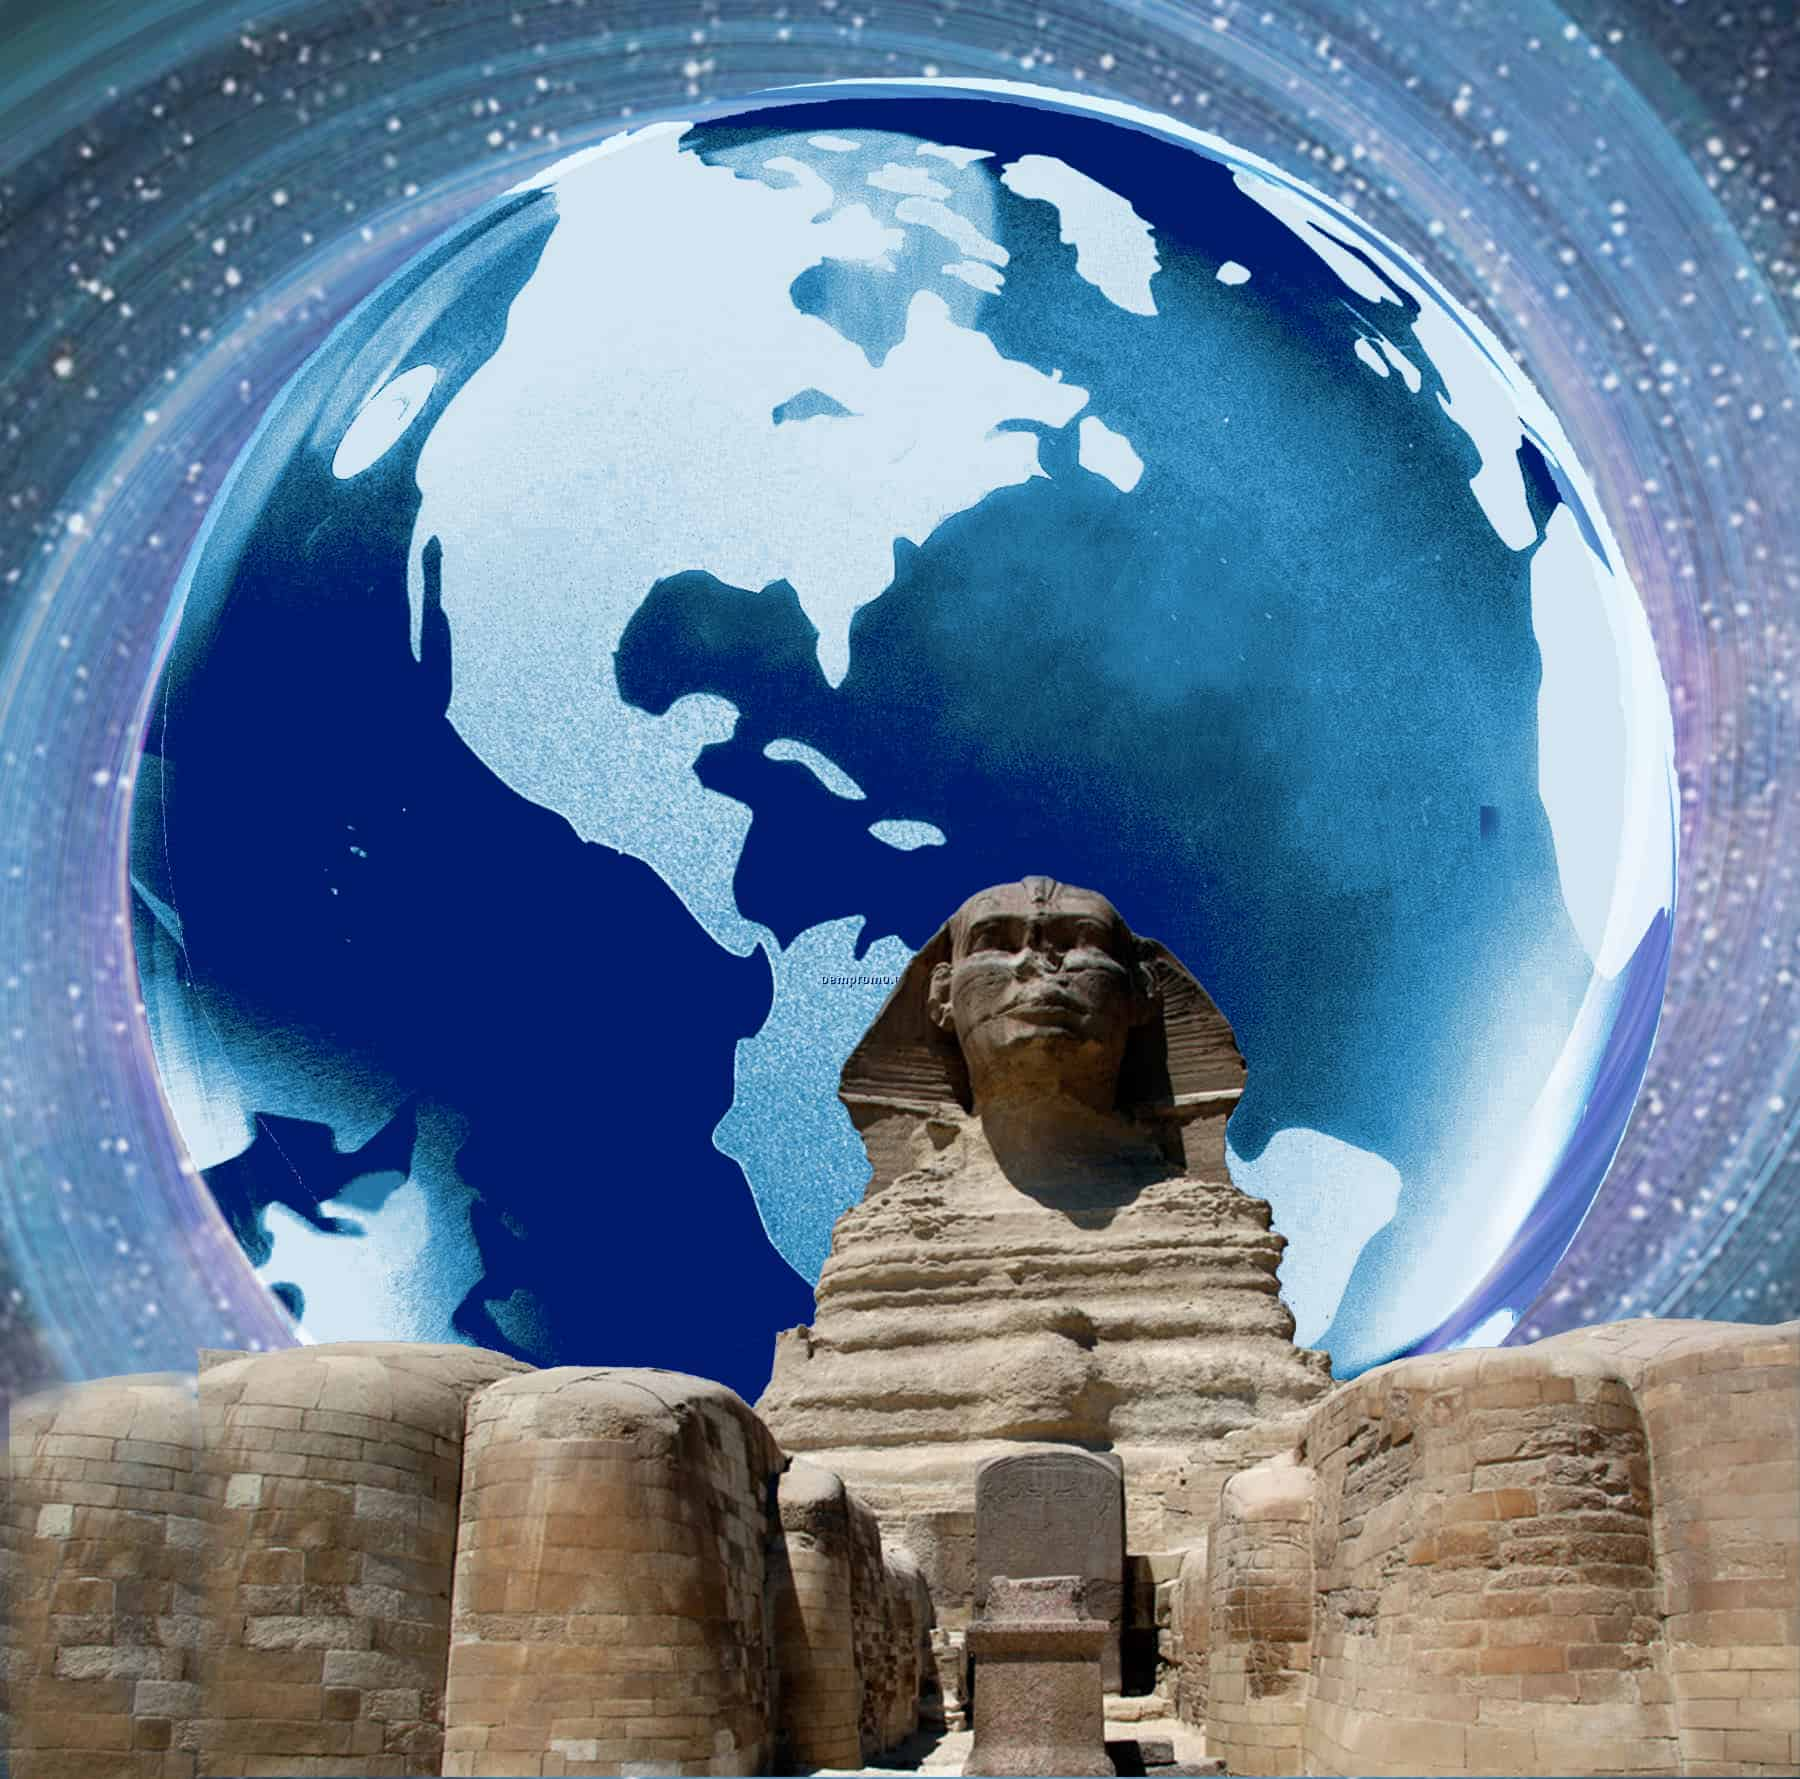 Geoengineering, Ubiquity, Discontinuity and Sphinx Like Riddles